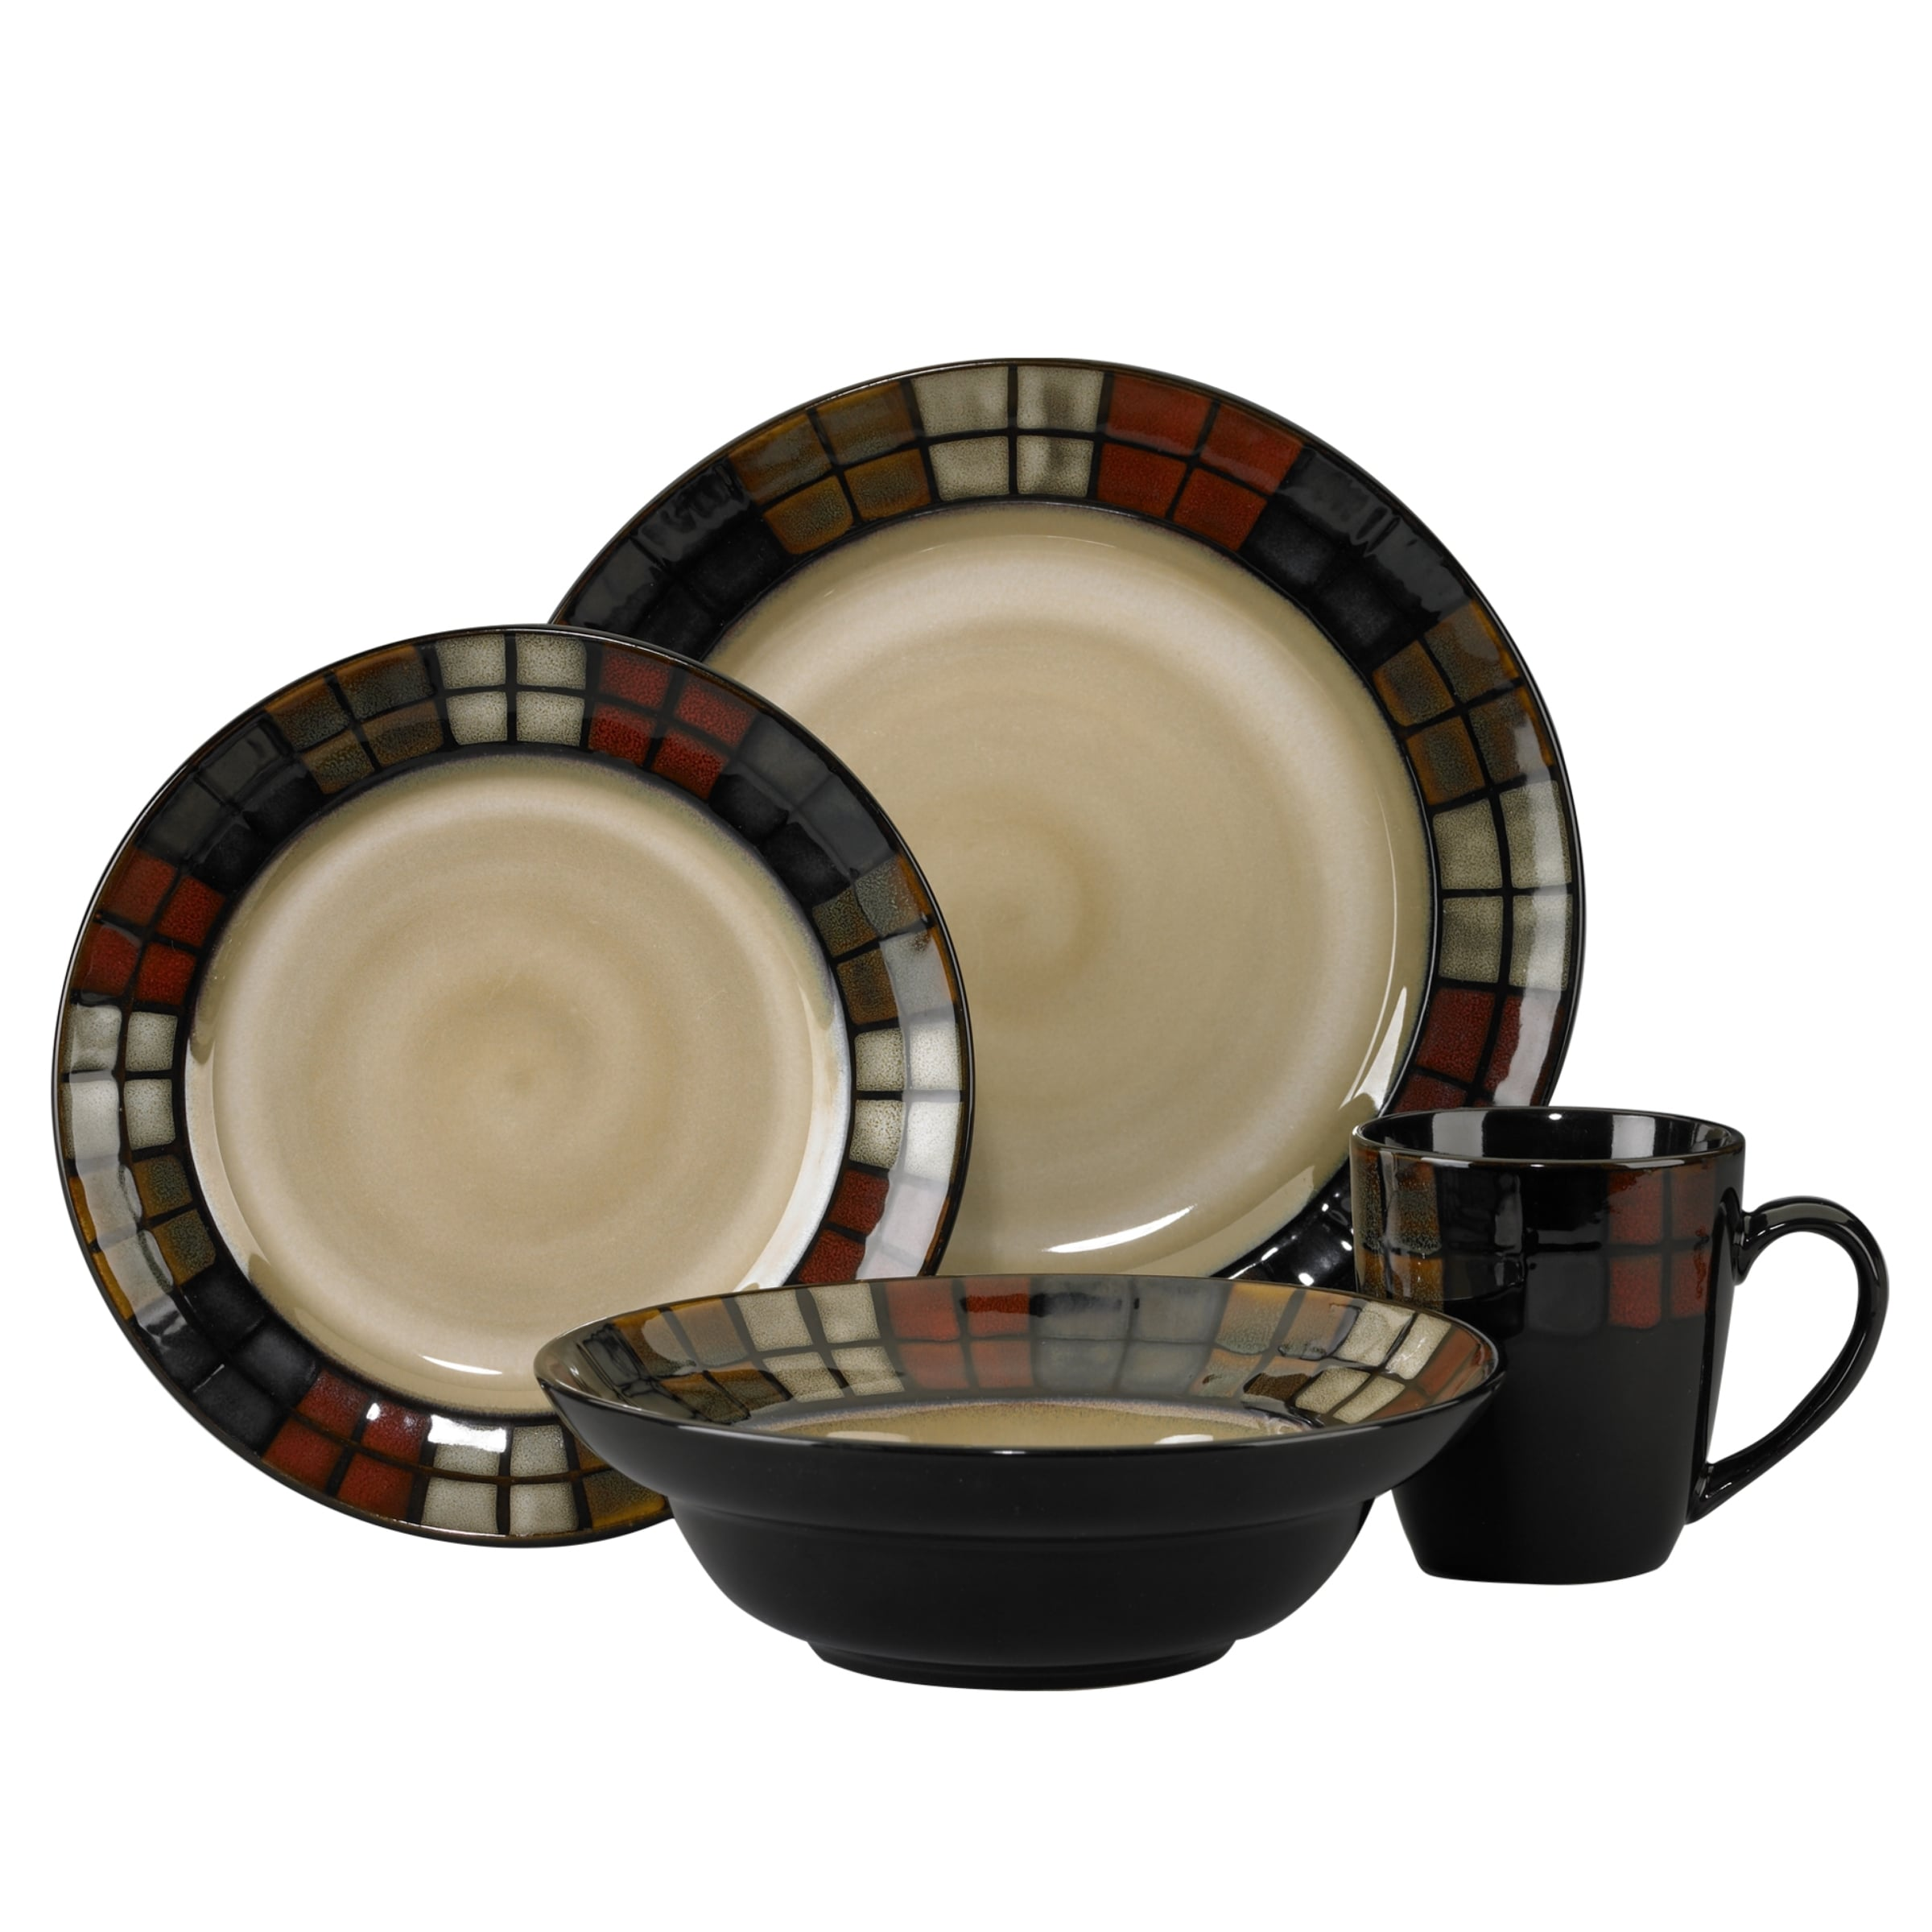 Shop Pfaltzgraff Calico 16-piece Dinnerware Set - Free Shipping ...